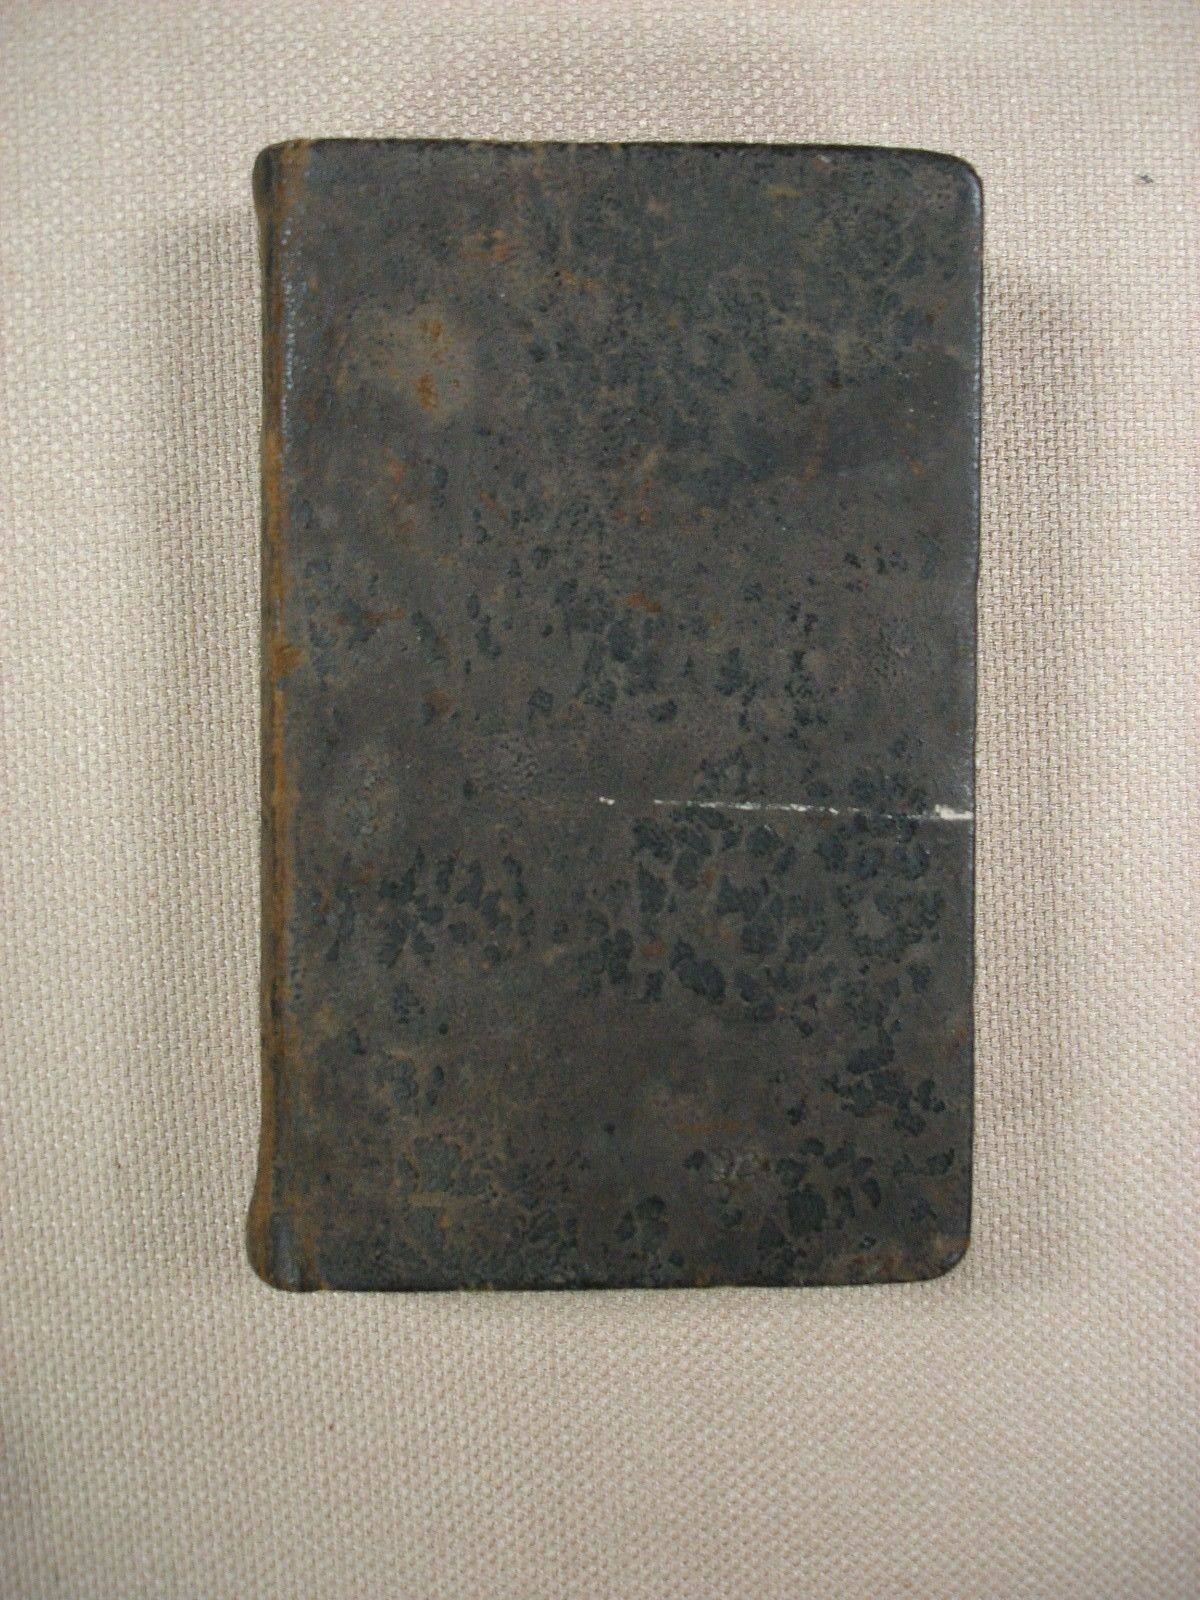 Hymns, Composed by Different Authors - 1808 - Bible - FBHP-1